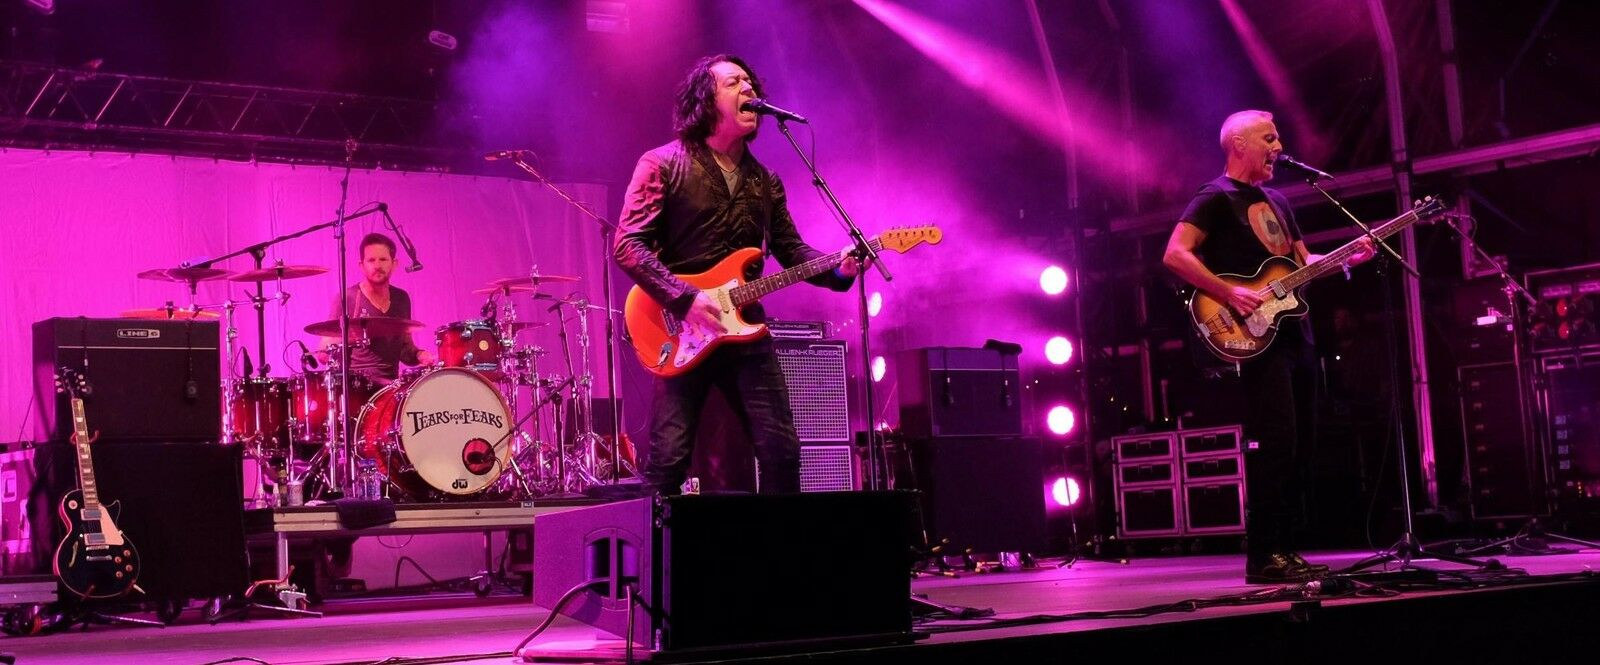 Tears for Fears Tickets (Rescheduled from July 26)